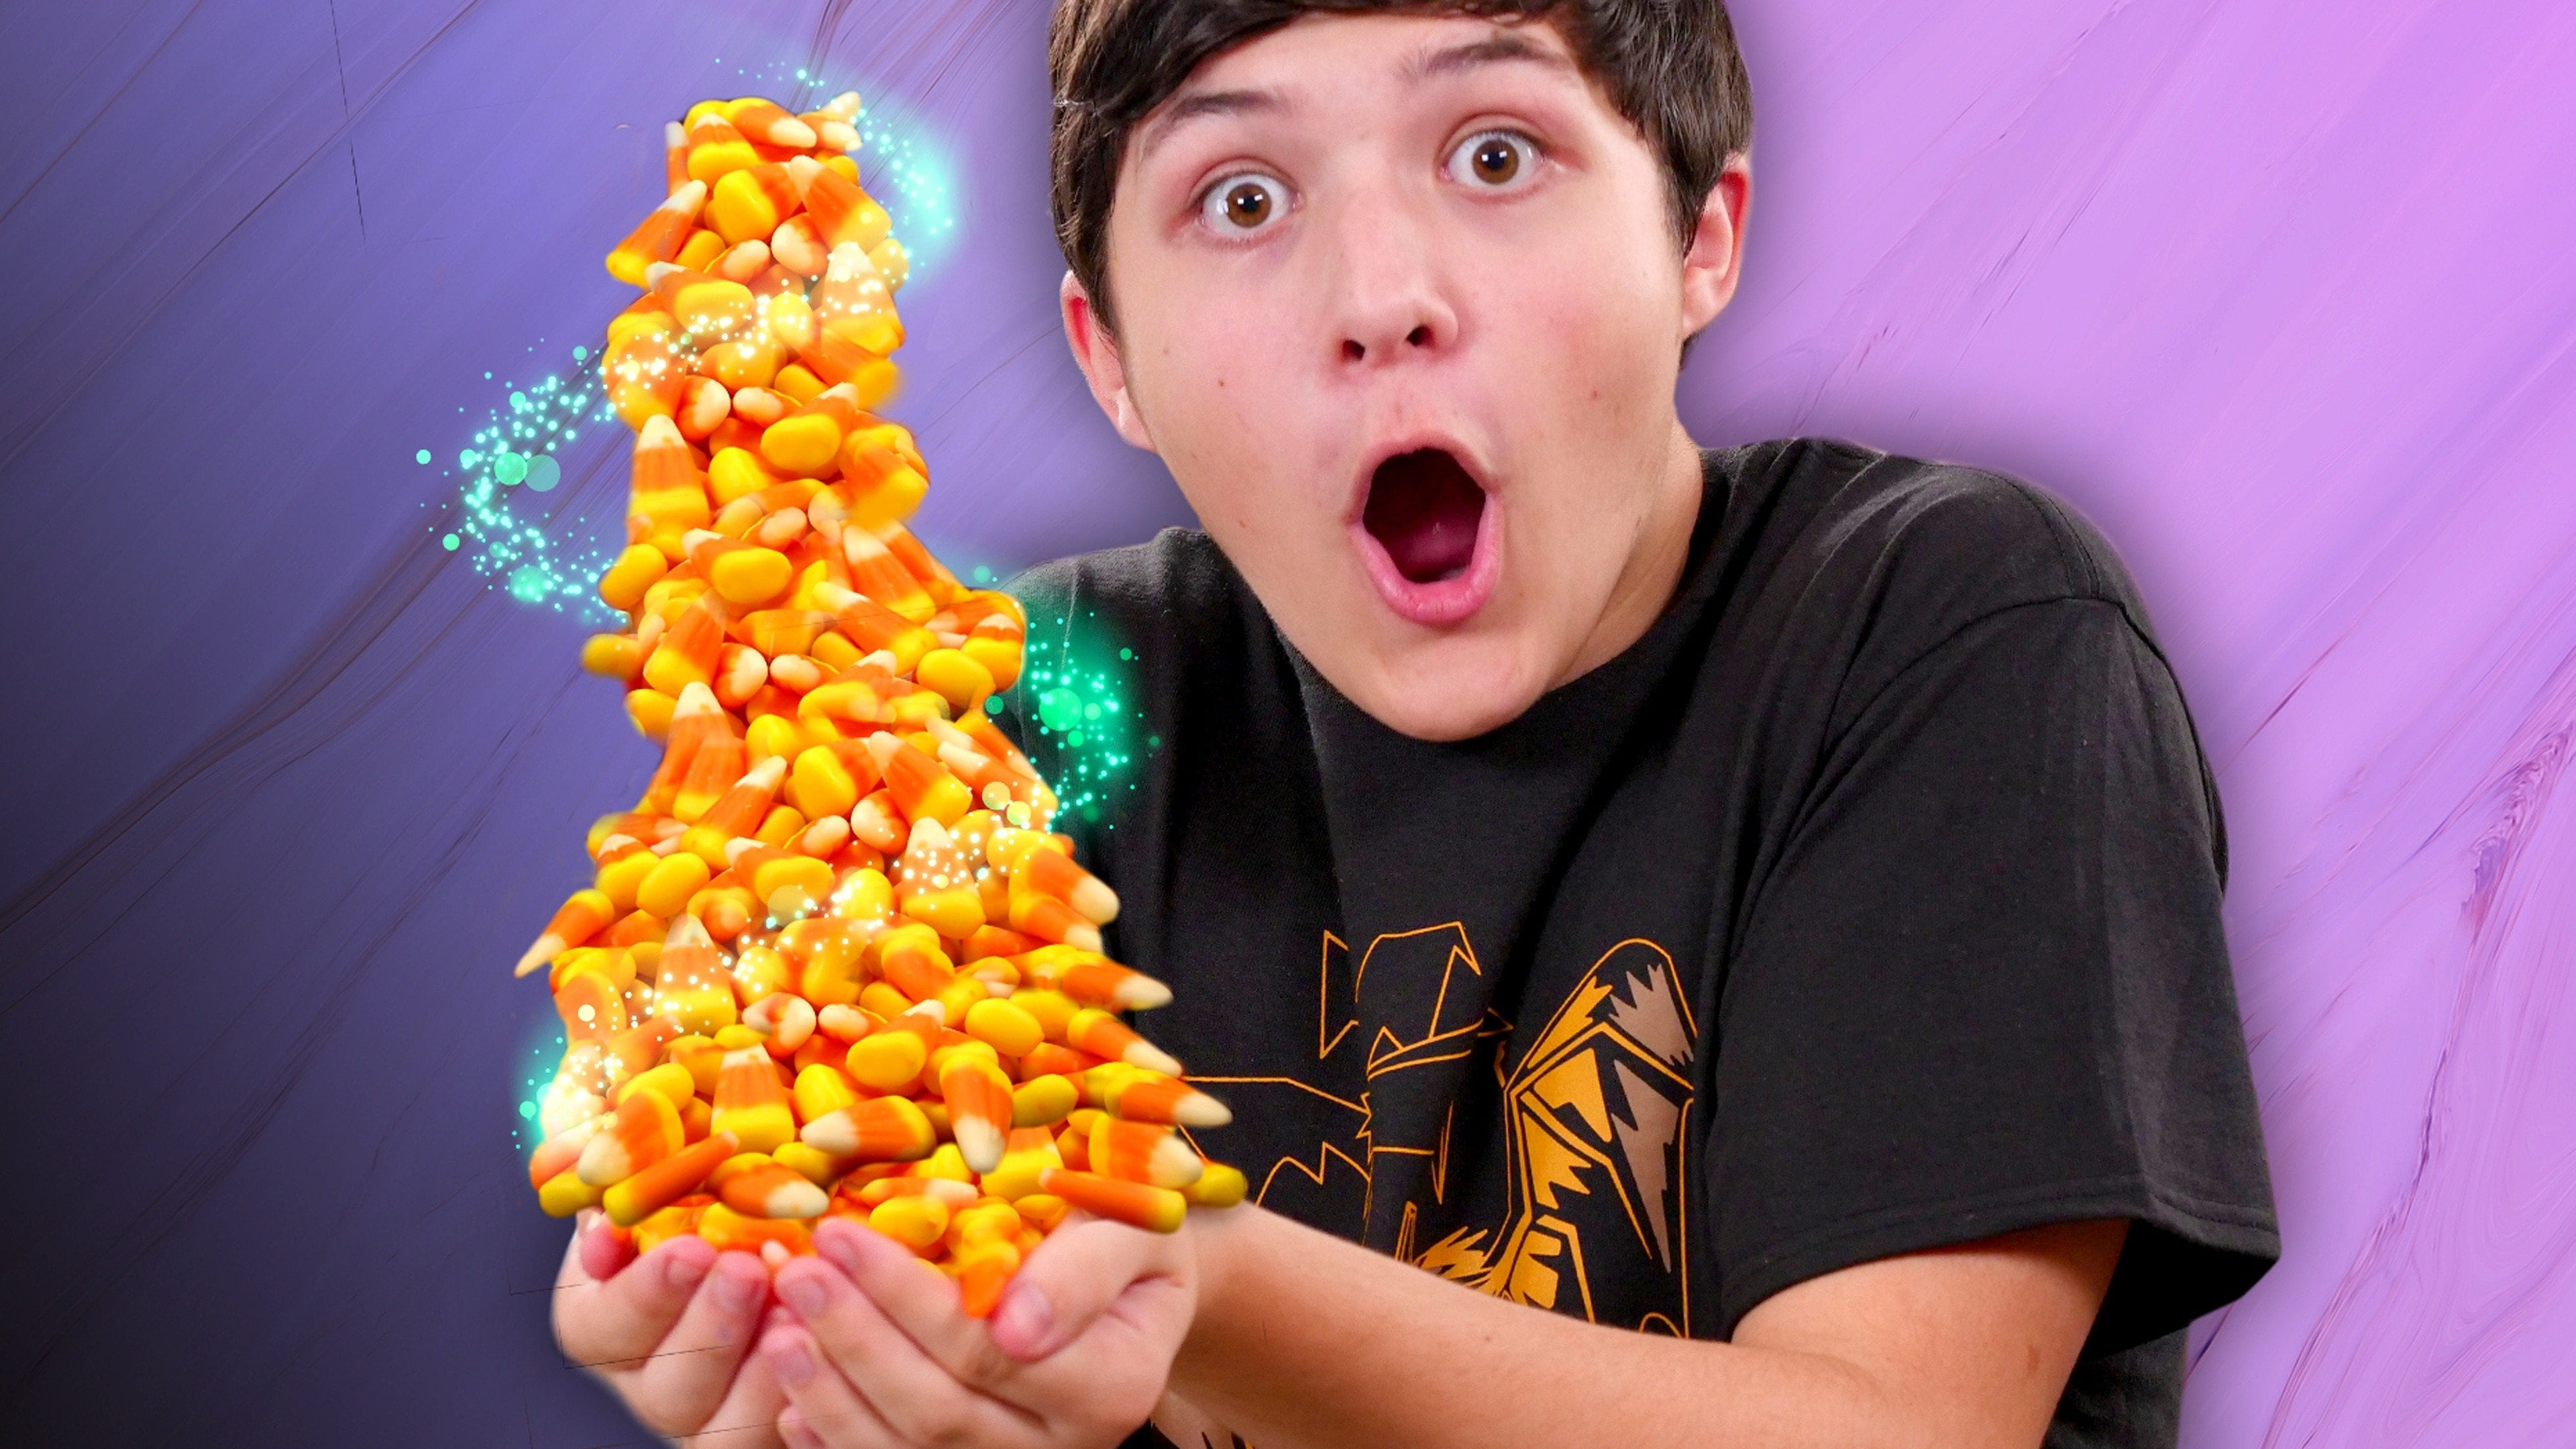 Instant Candy Corn Trick